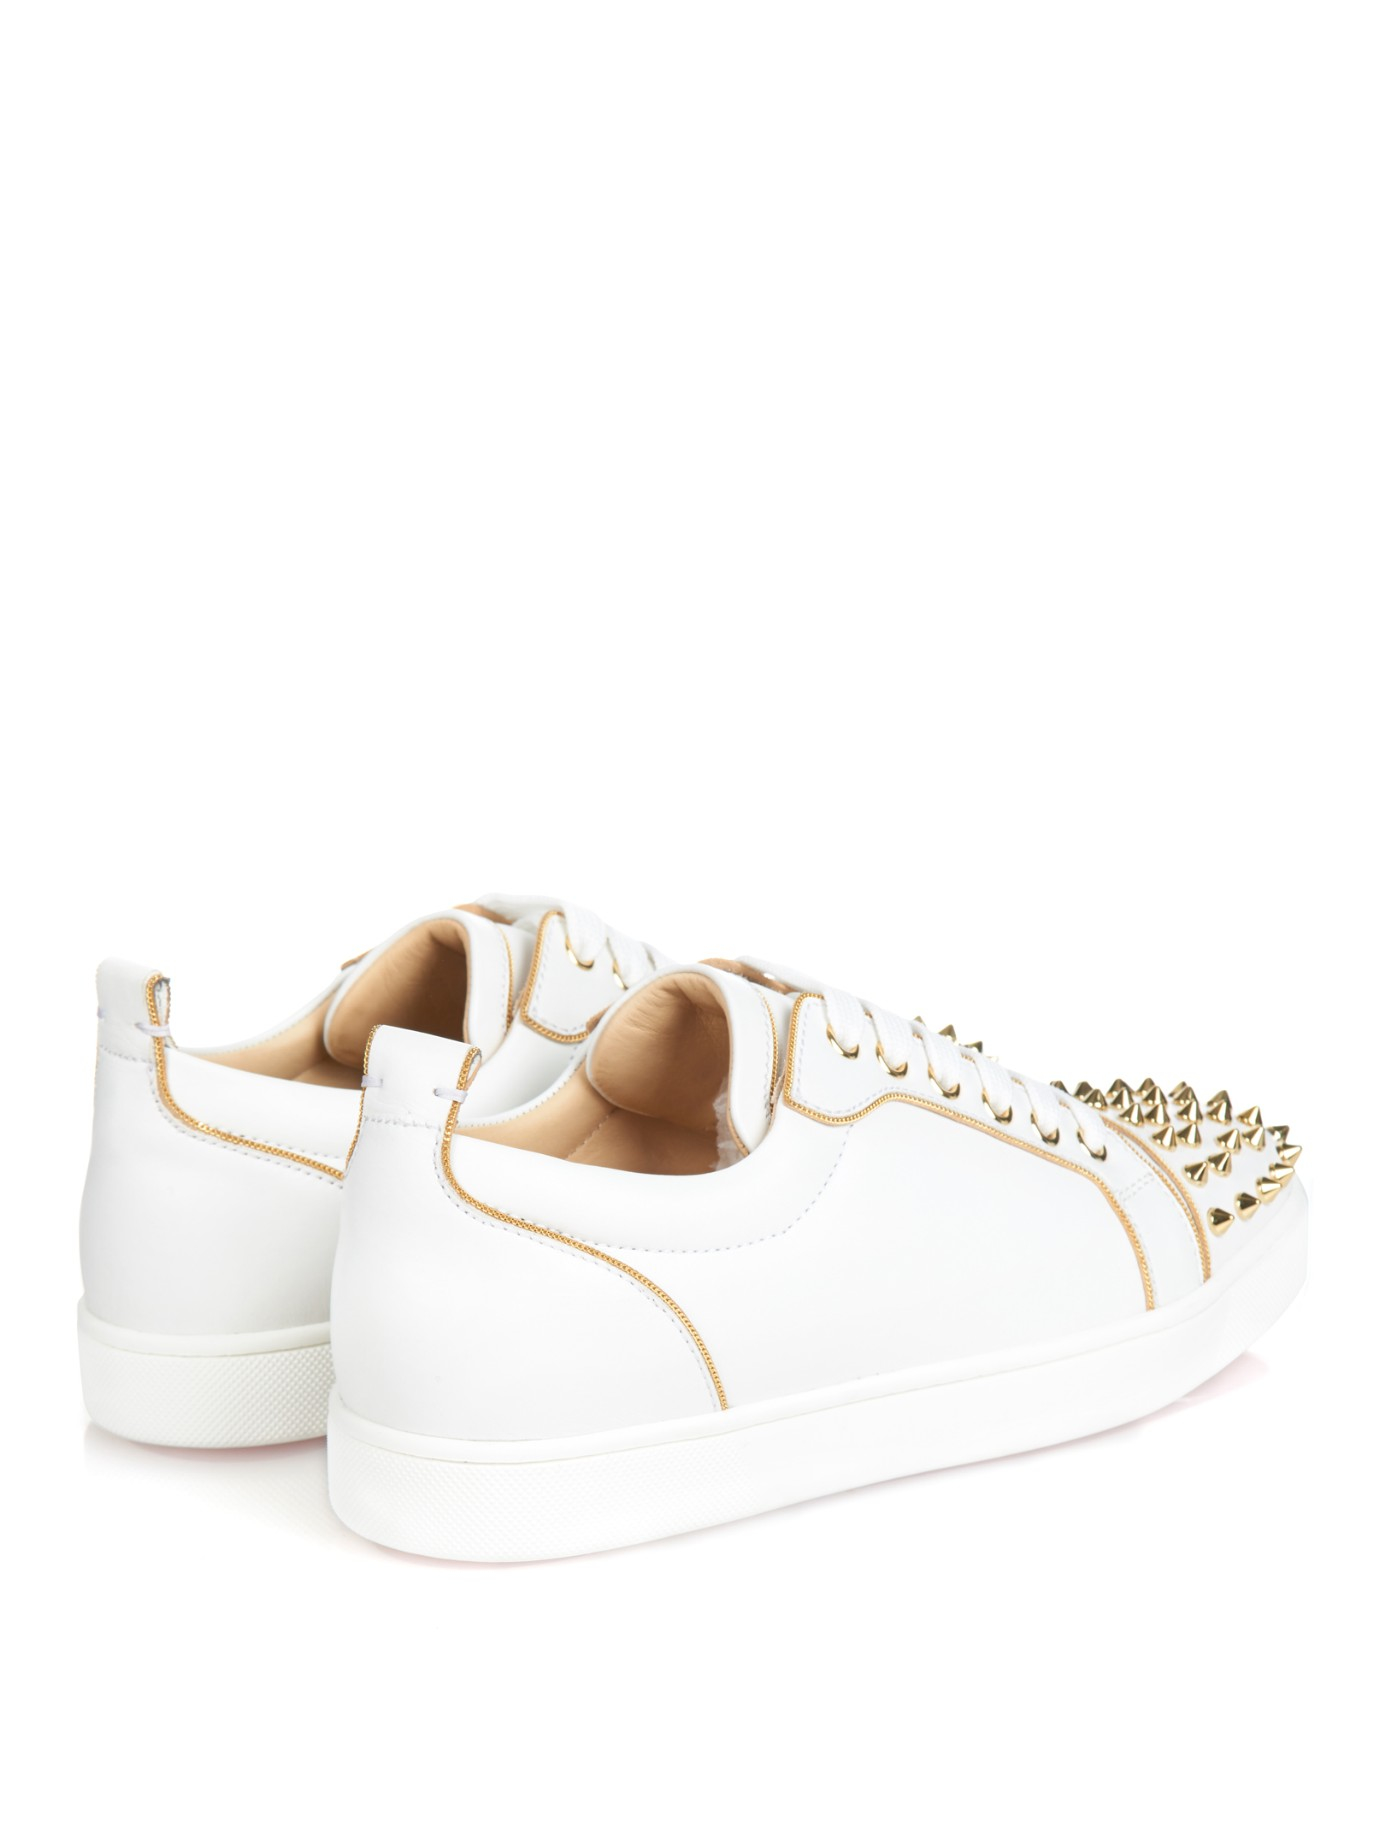 louboutin knock off - Christian louboutin Rush Studded Low-Top Leather Trainers in Gold ...